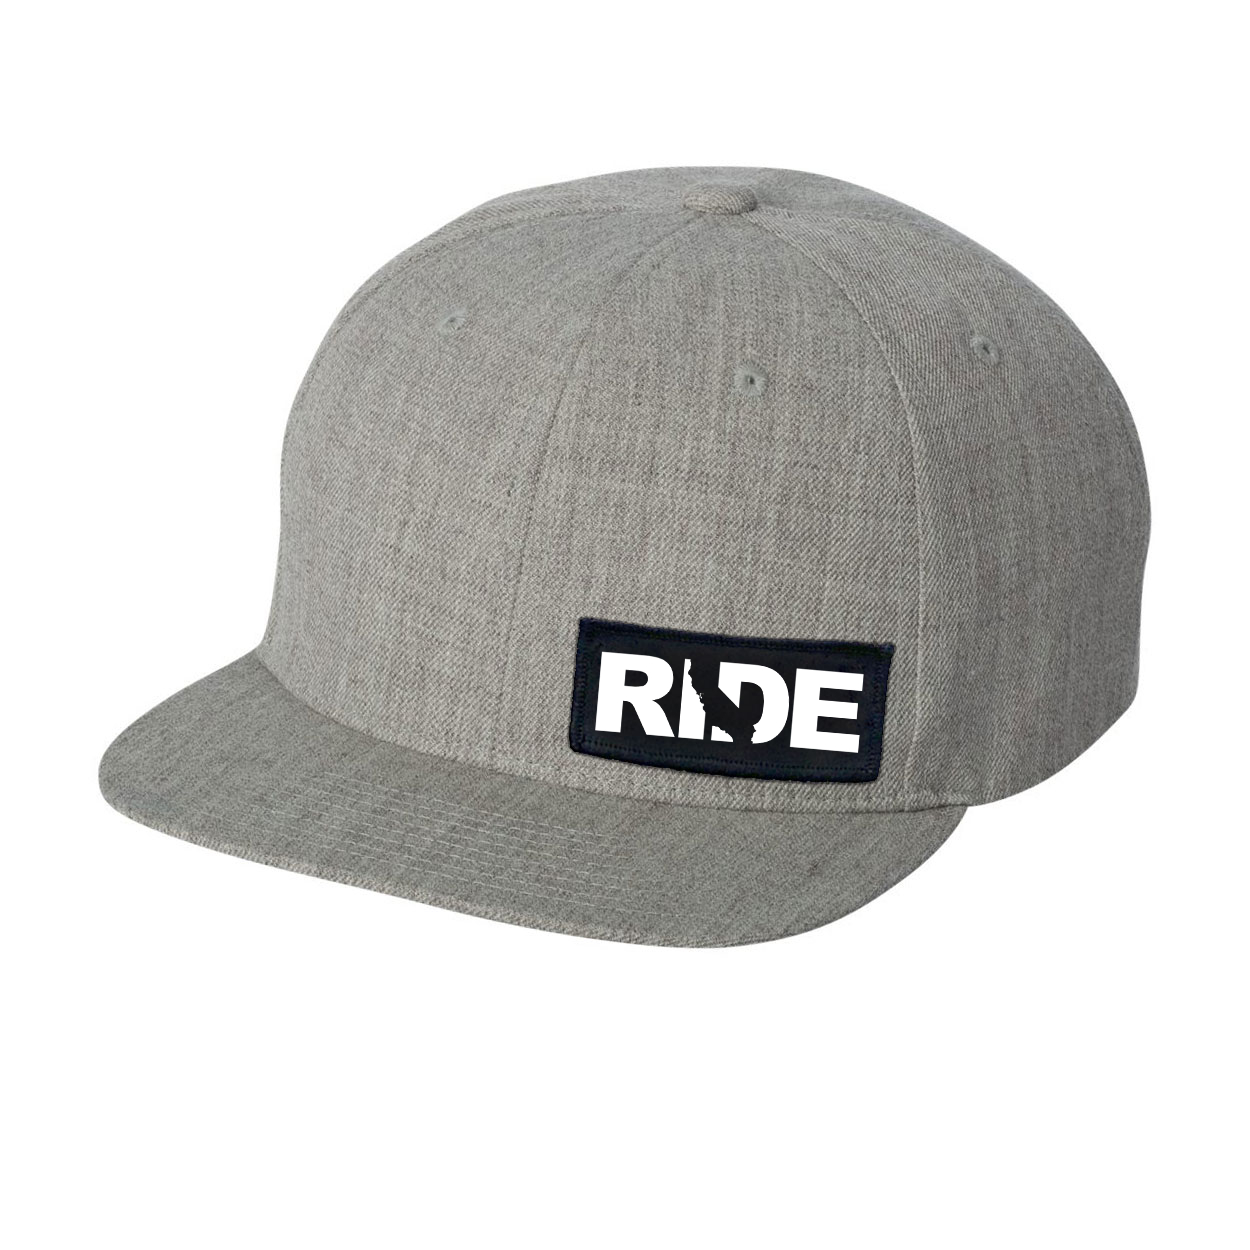 Ride California Night Out Woven Patch Flat Brim Snapback Hat Heather Gray (White Logo)